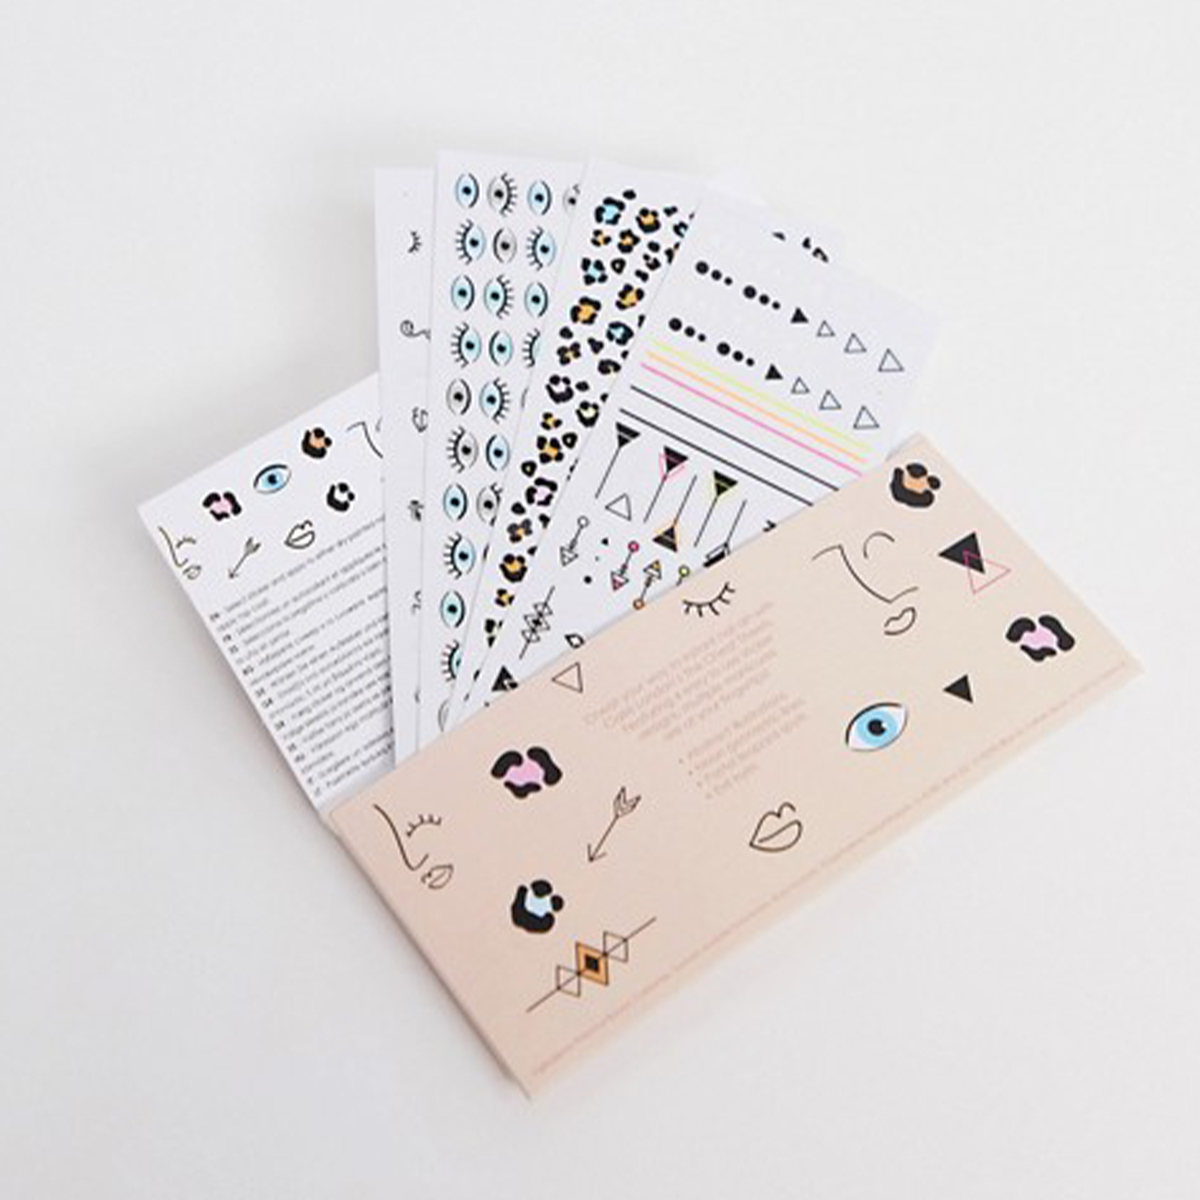 Several sheets of nail art stickers splayed out